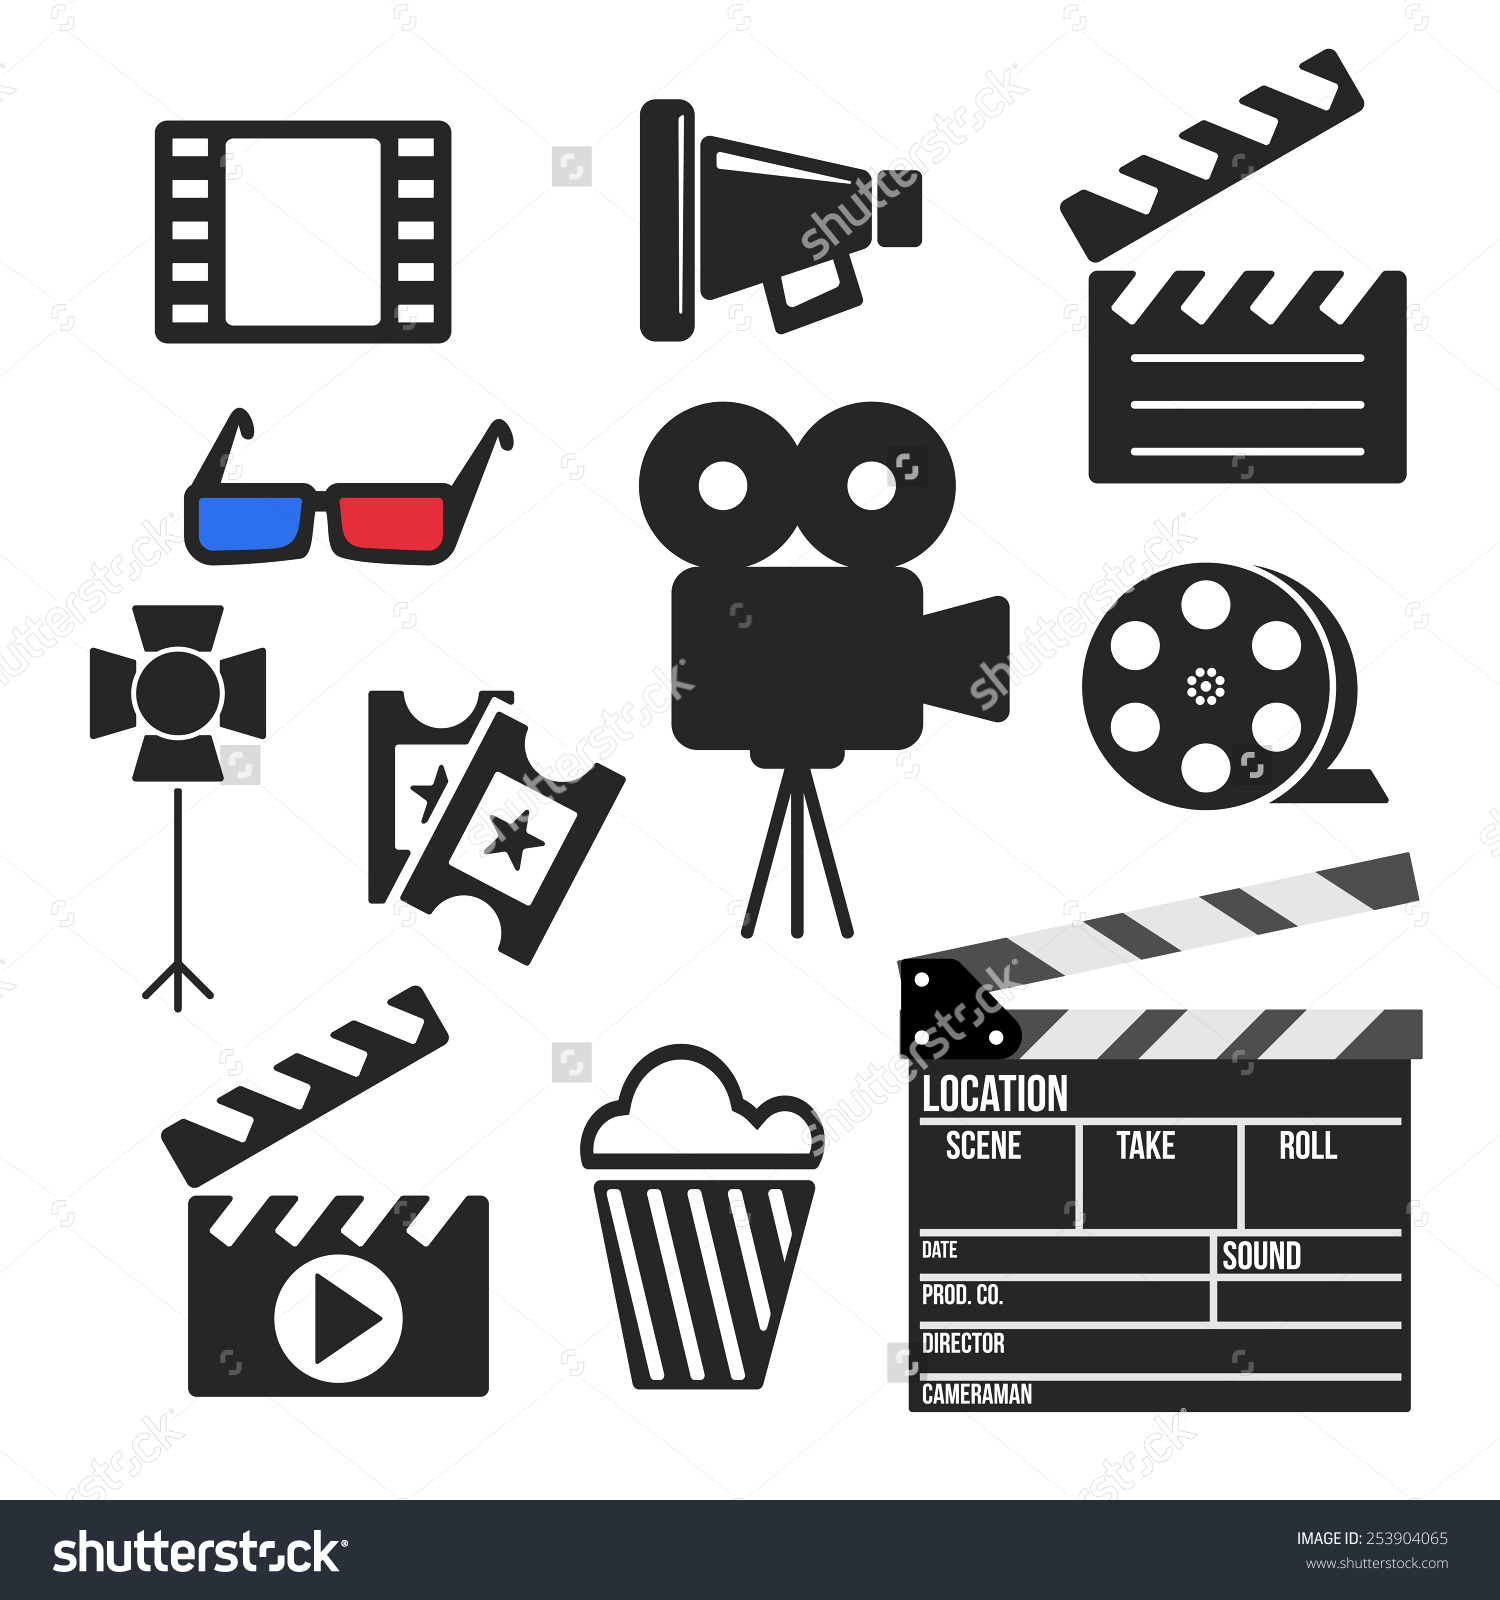 video production clipart  Clipground